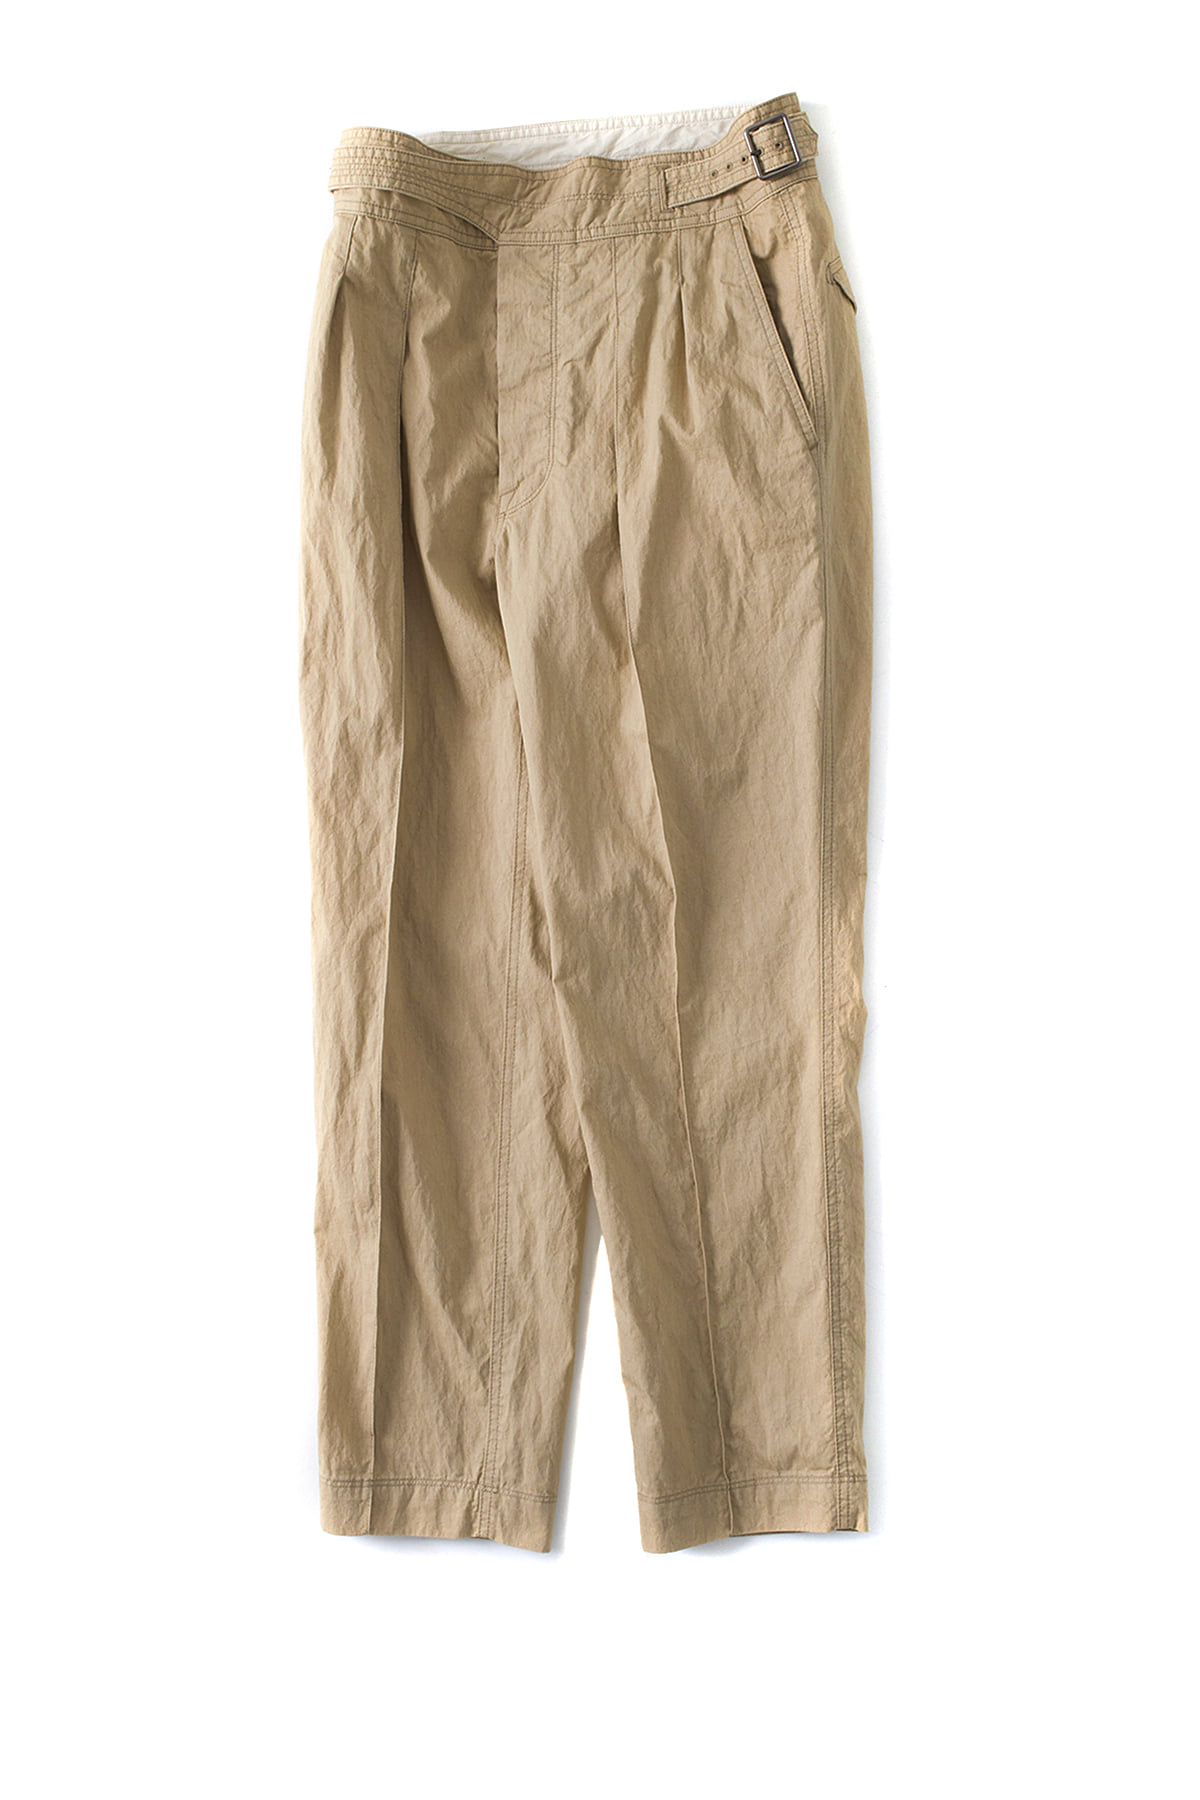 Eastlogue : Gurkha Pants (Beige)